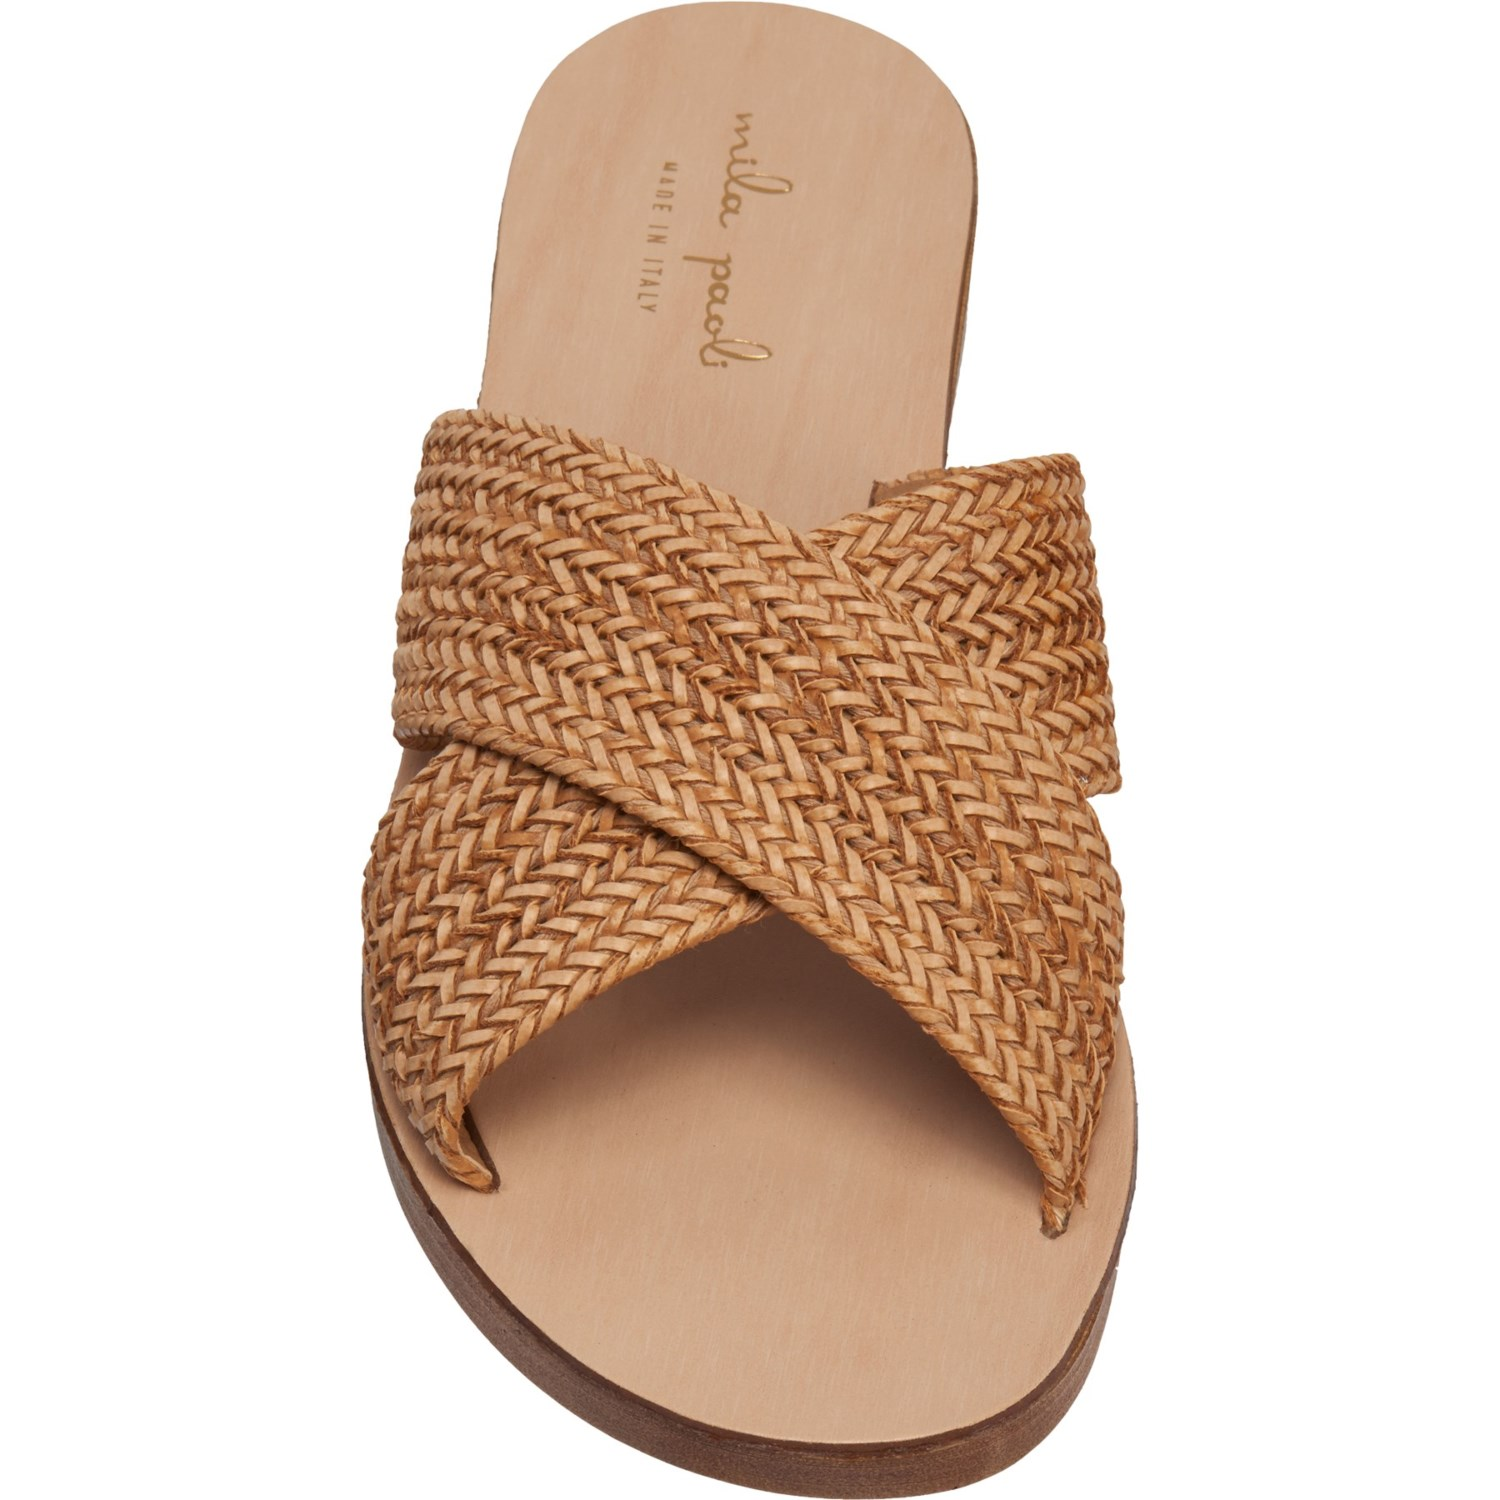 fd3574735fee MILA PAOLI Made in Italy Raffia Sandals (For Women) - Save 50%